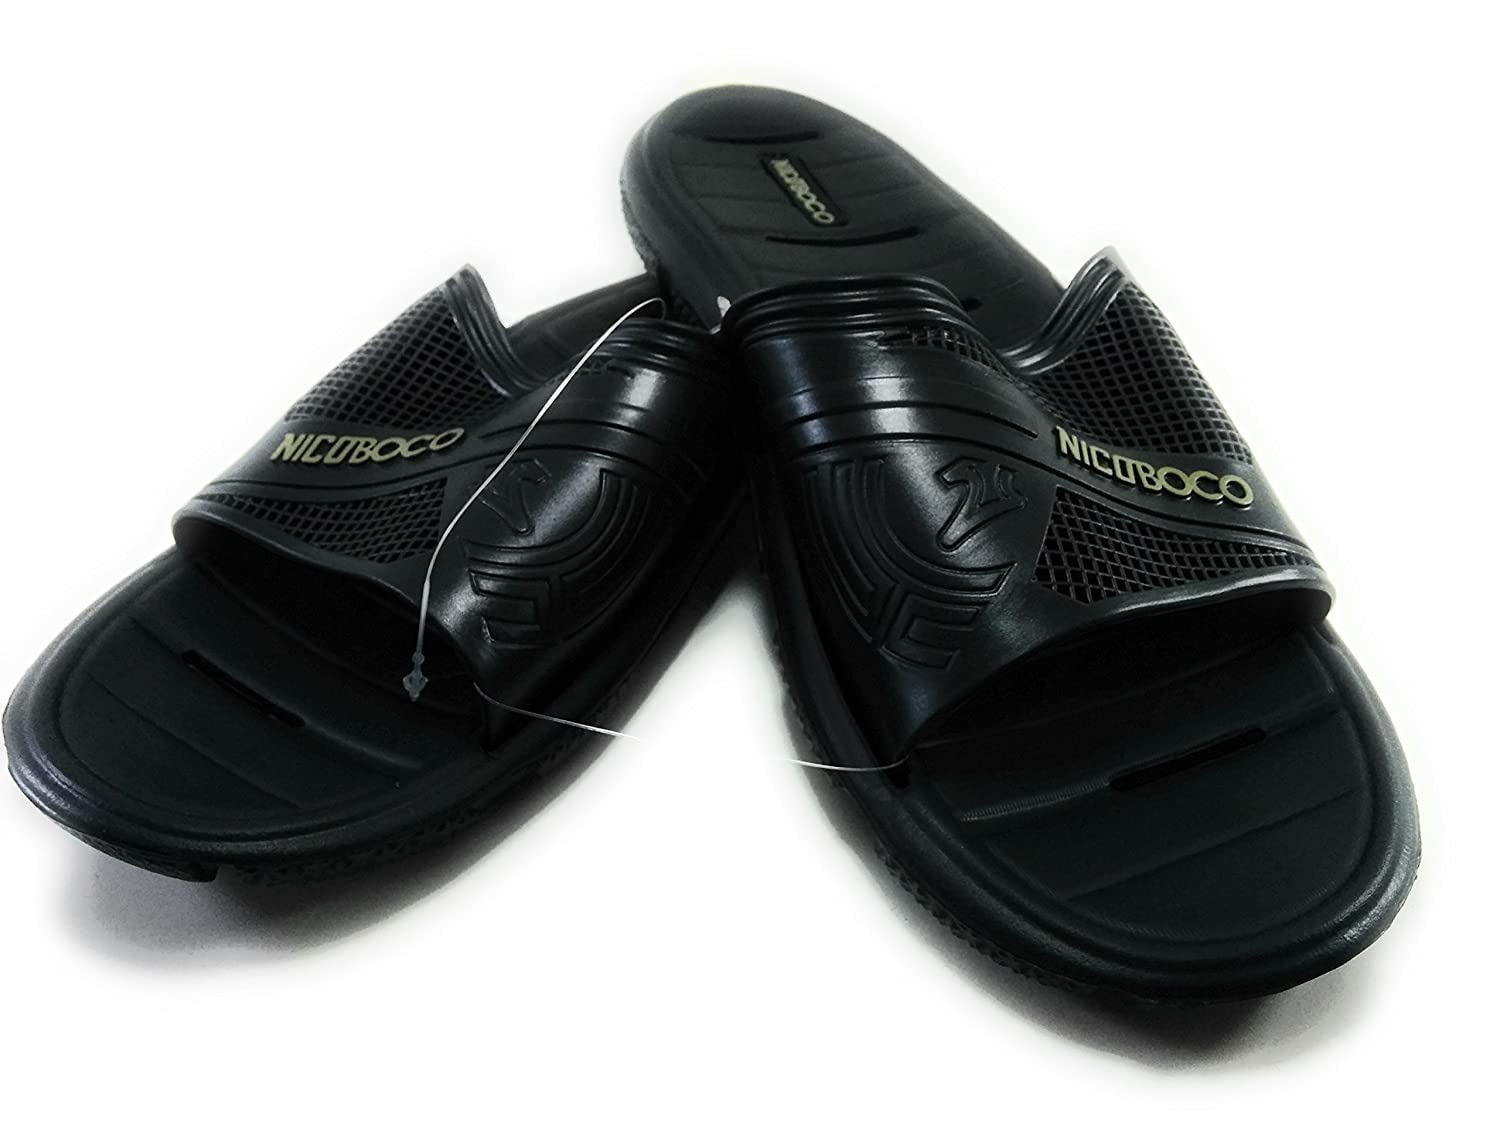 98478fe14b38 Nicoboco Men s Thong Sandals Black  Amazon.co.uk  Shoes   Bags